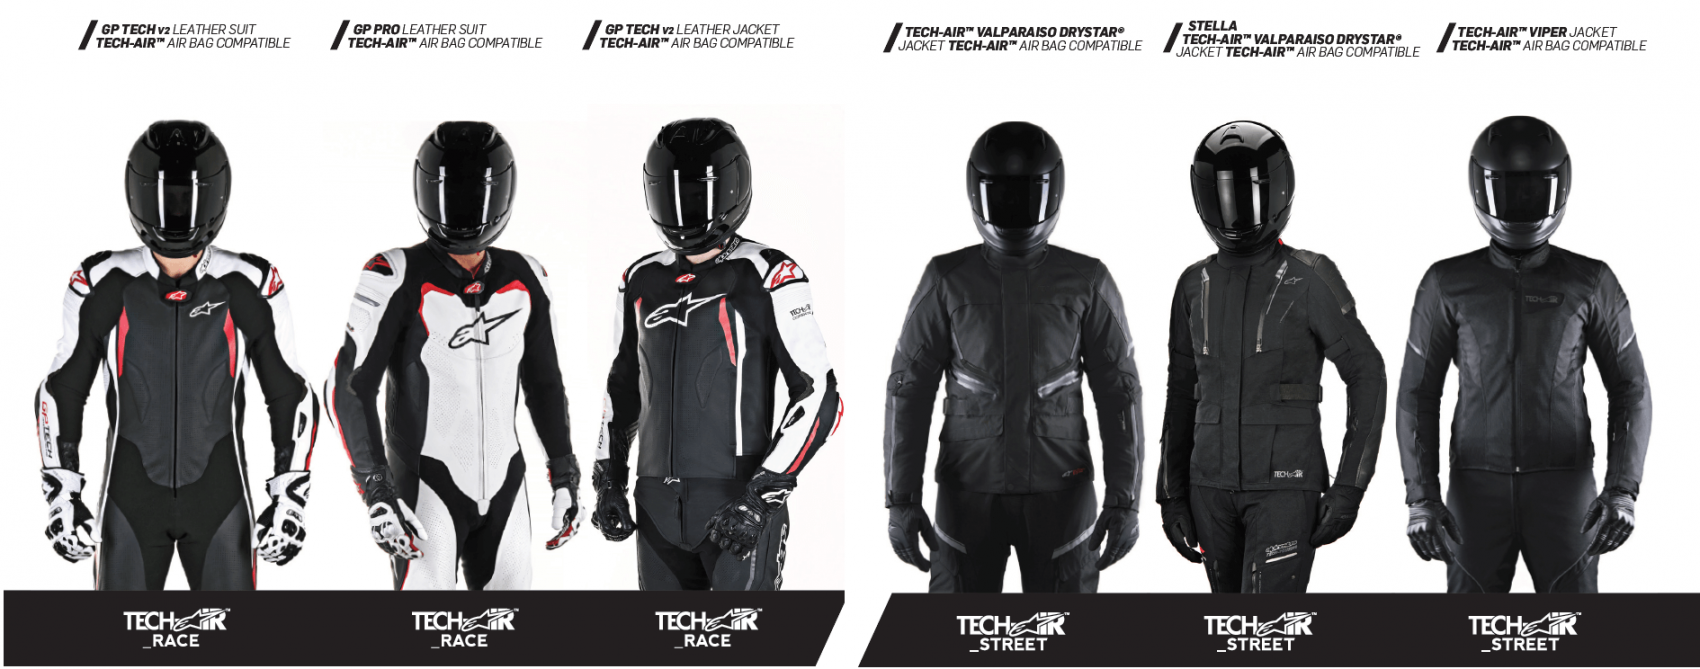 alpinestars tech air race en street vest compatibel